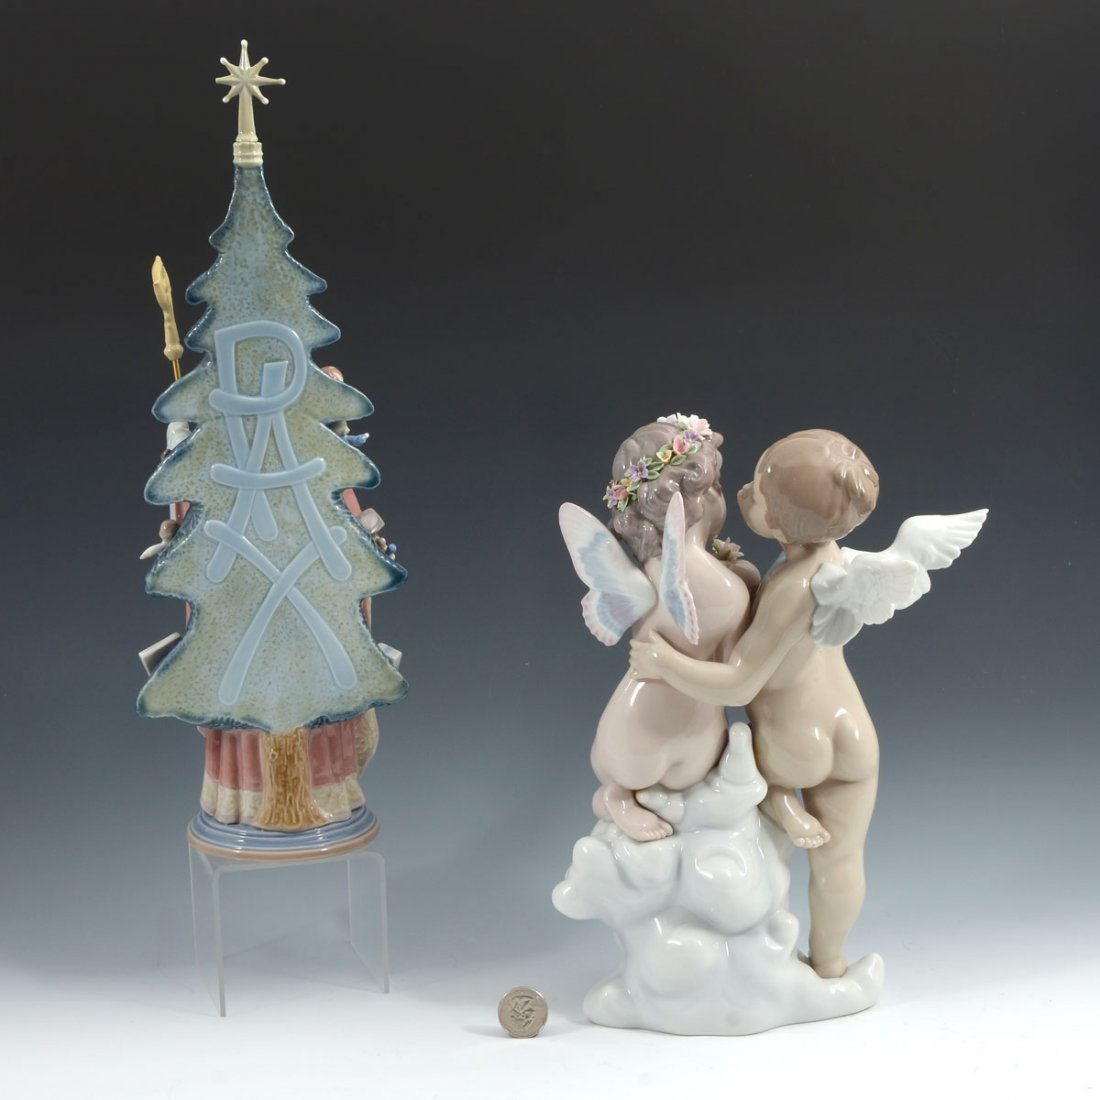 2 LARGE LLADRO FIGURINES - 2